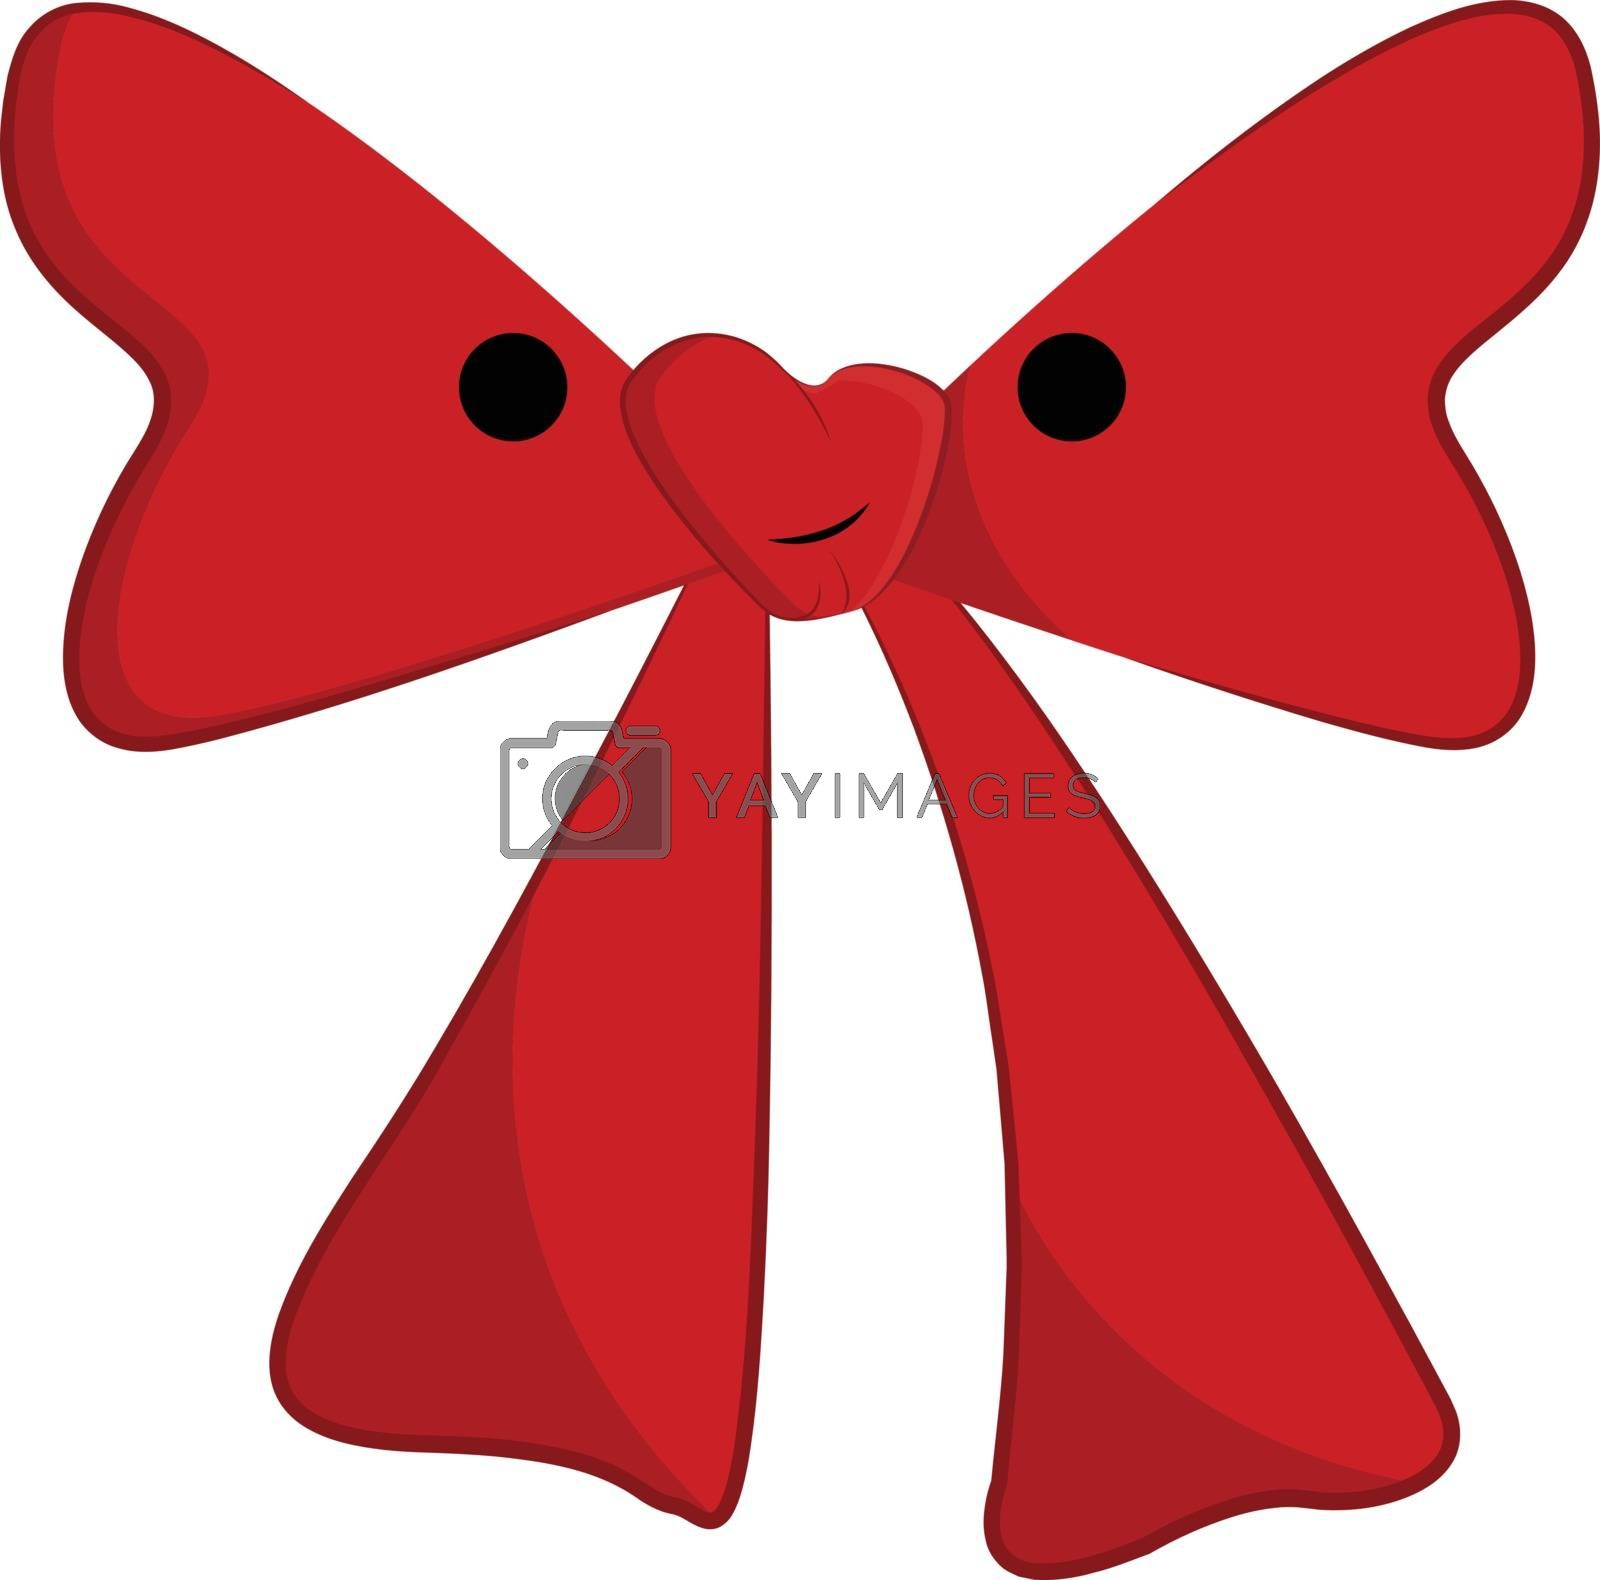 Royalty free image of Clipart of a red bow tie with a white exclamation mark vector or by Morphart